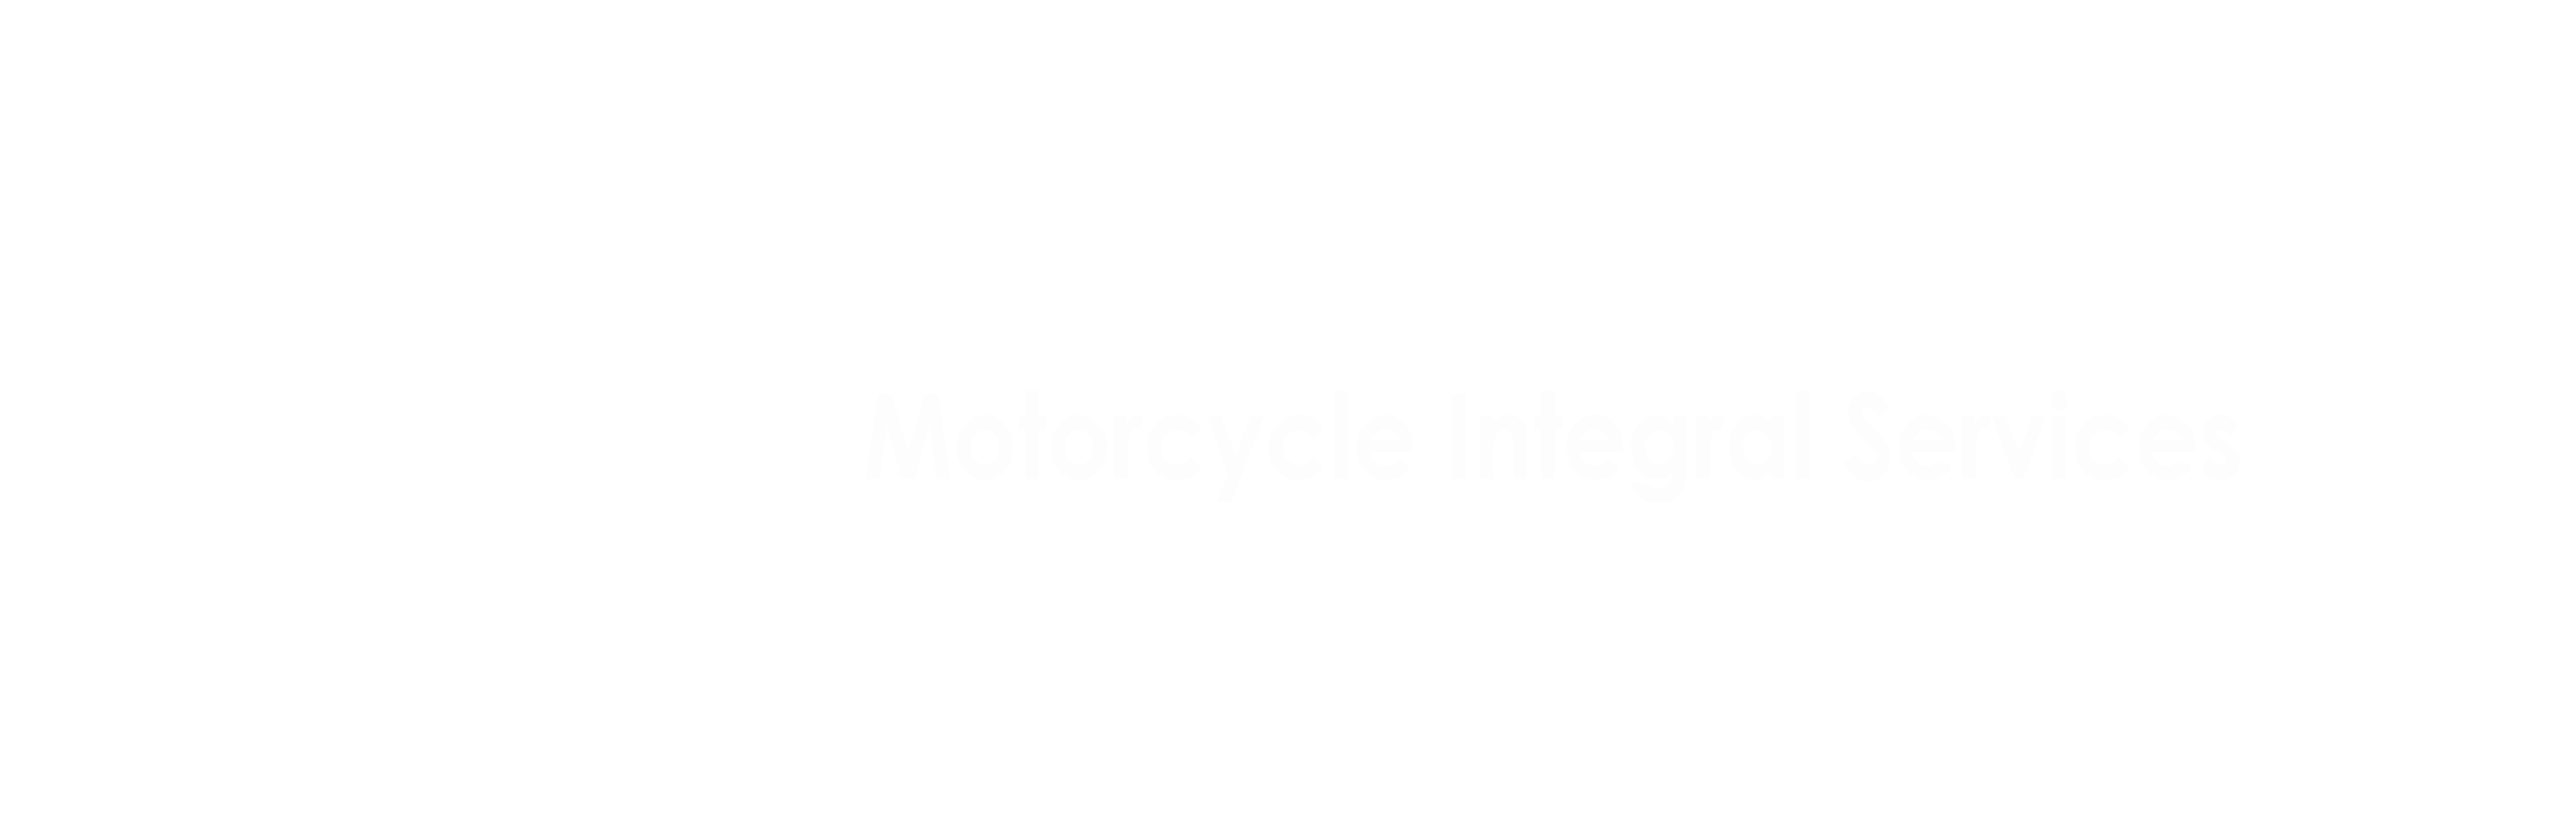 Motorcycle Integral Services